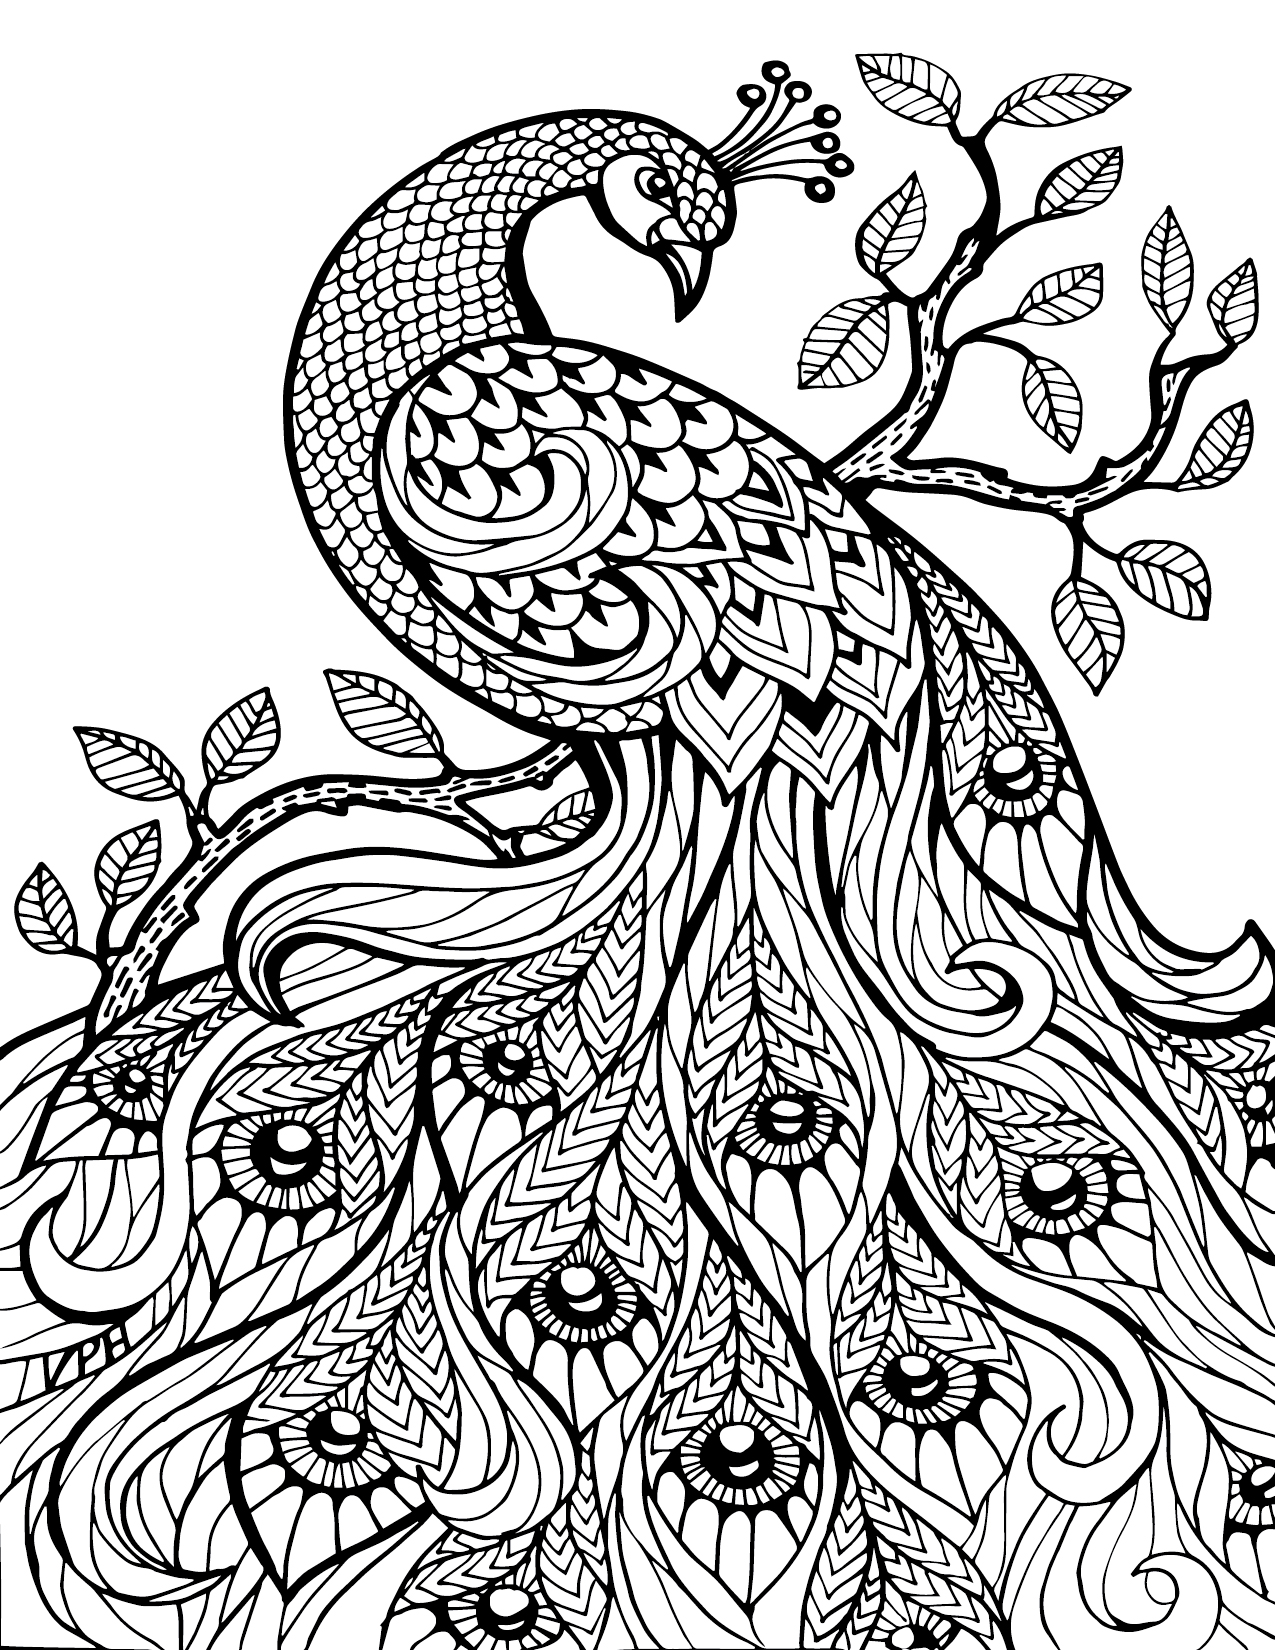 166 Breathtaking Free Printable Adult Coloring Pages For Chronic Illness Warriors Chronic Illness Warrior Life